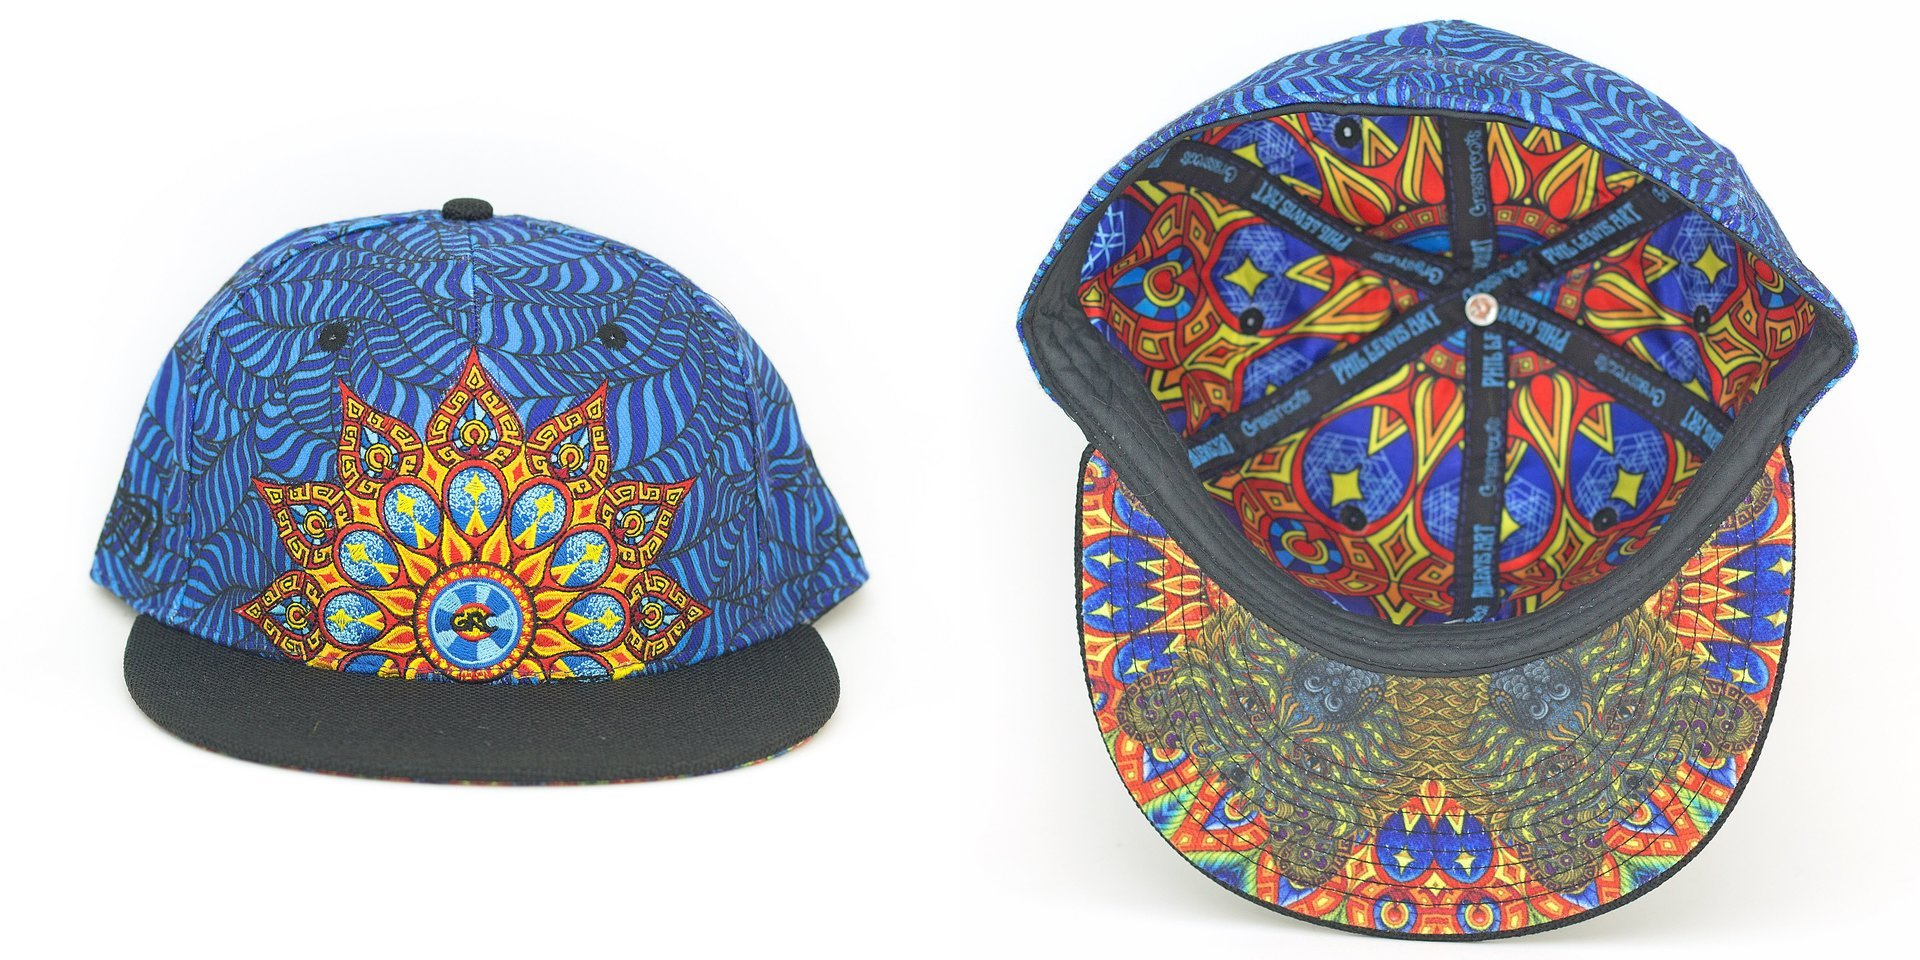 Phil Lewis Mandala Blue Fitted Grassroots California Hat 30031324c195